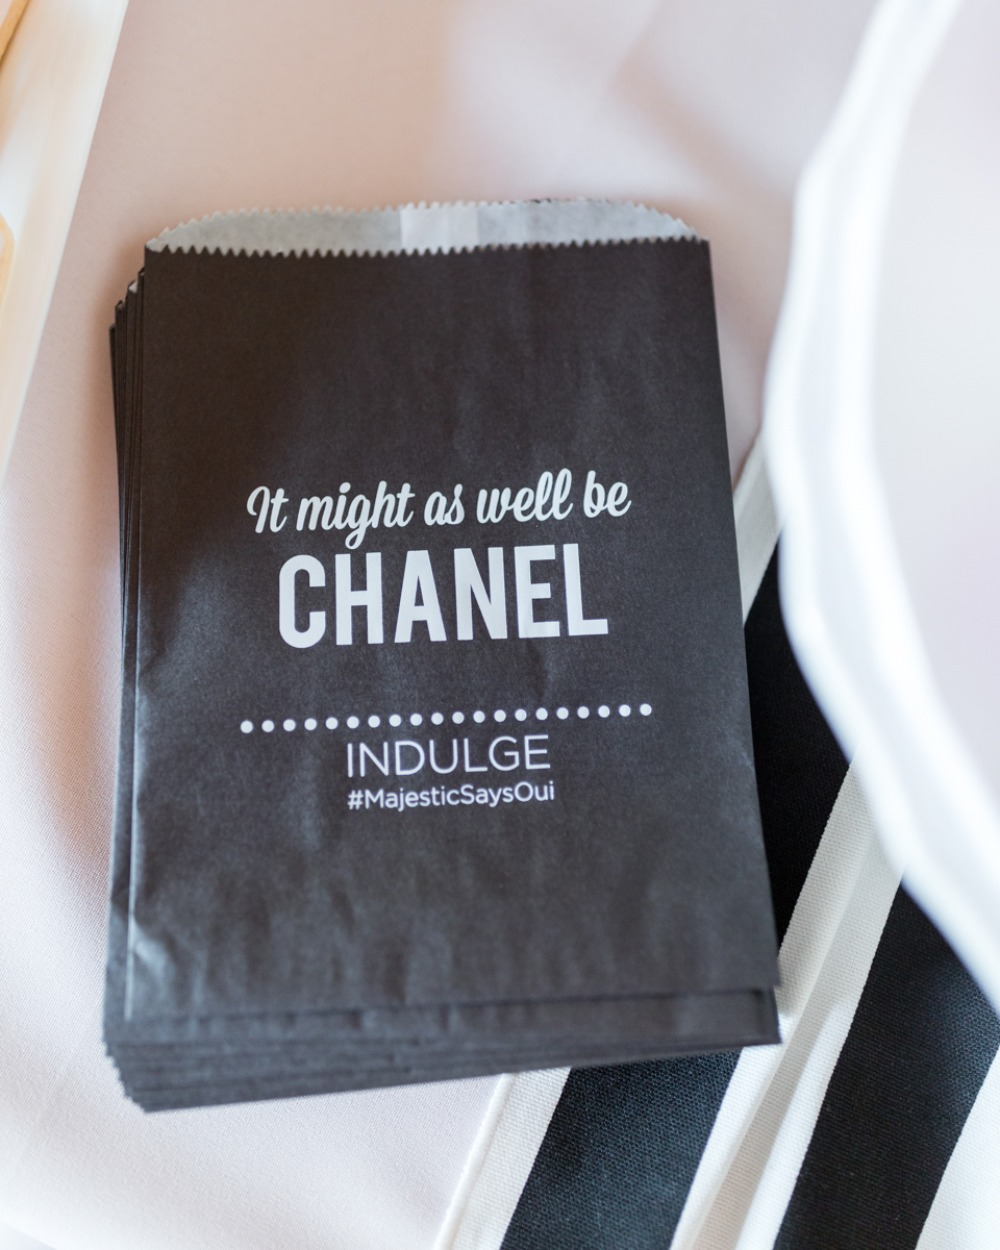 it might as well be Chanel snack bags